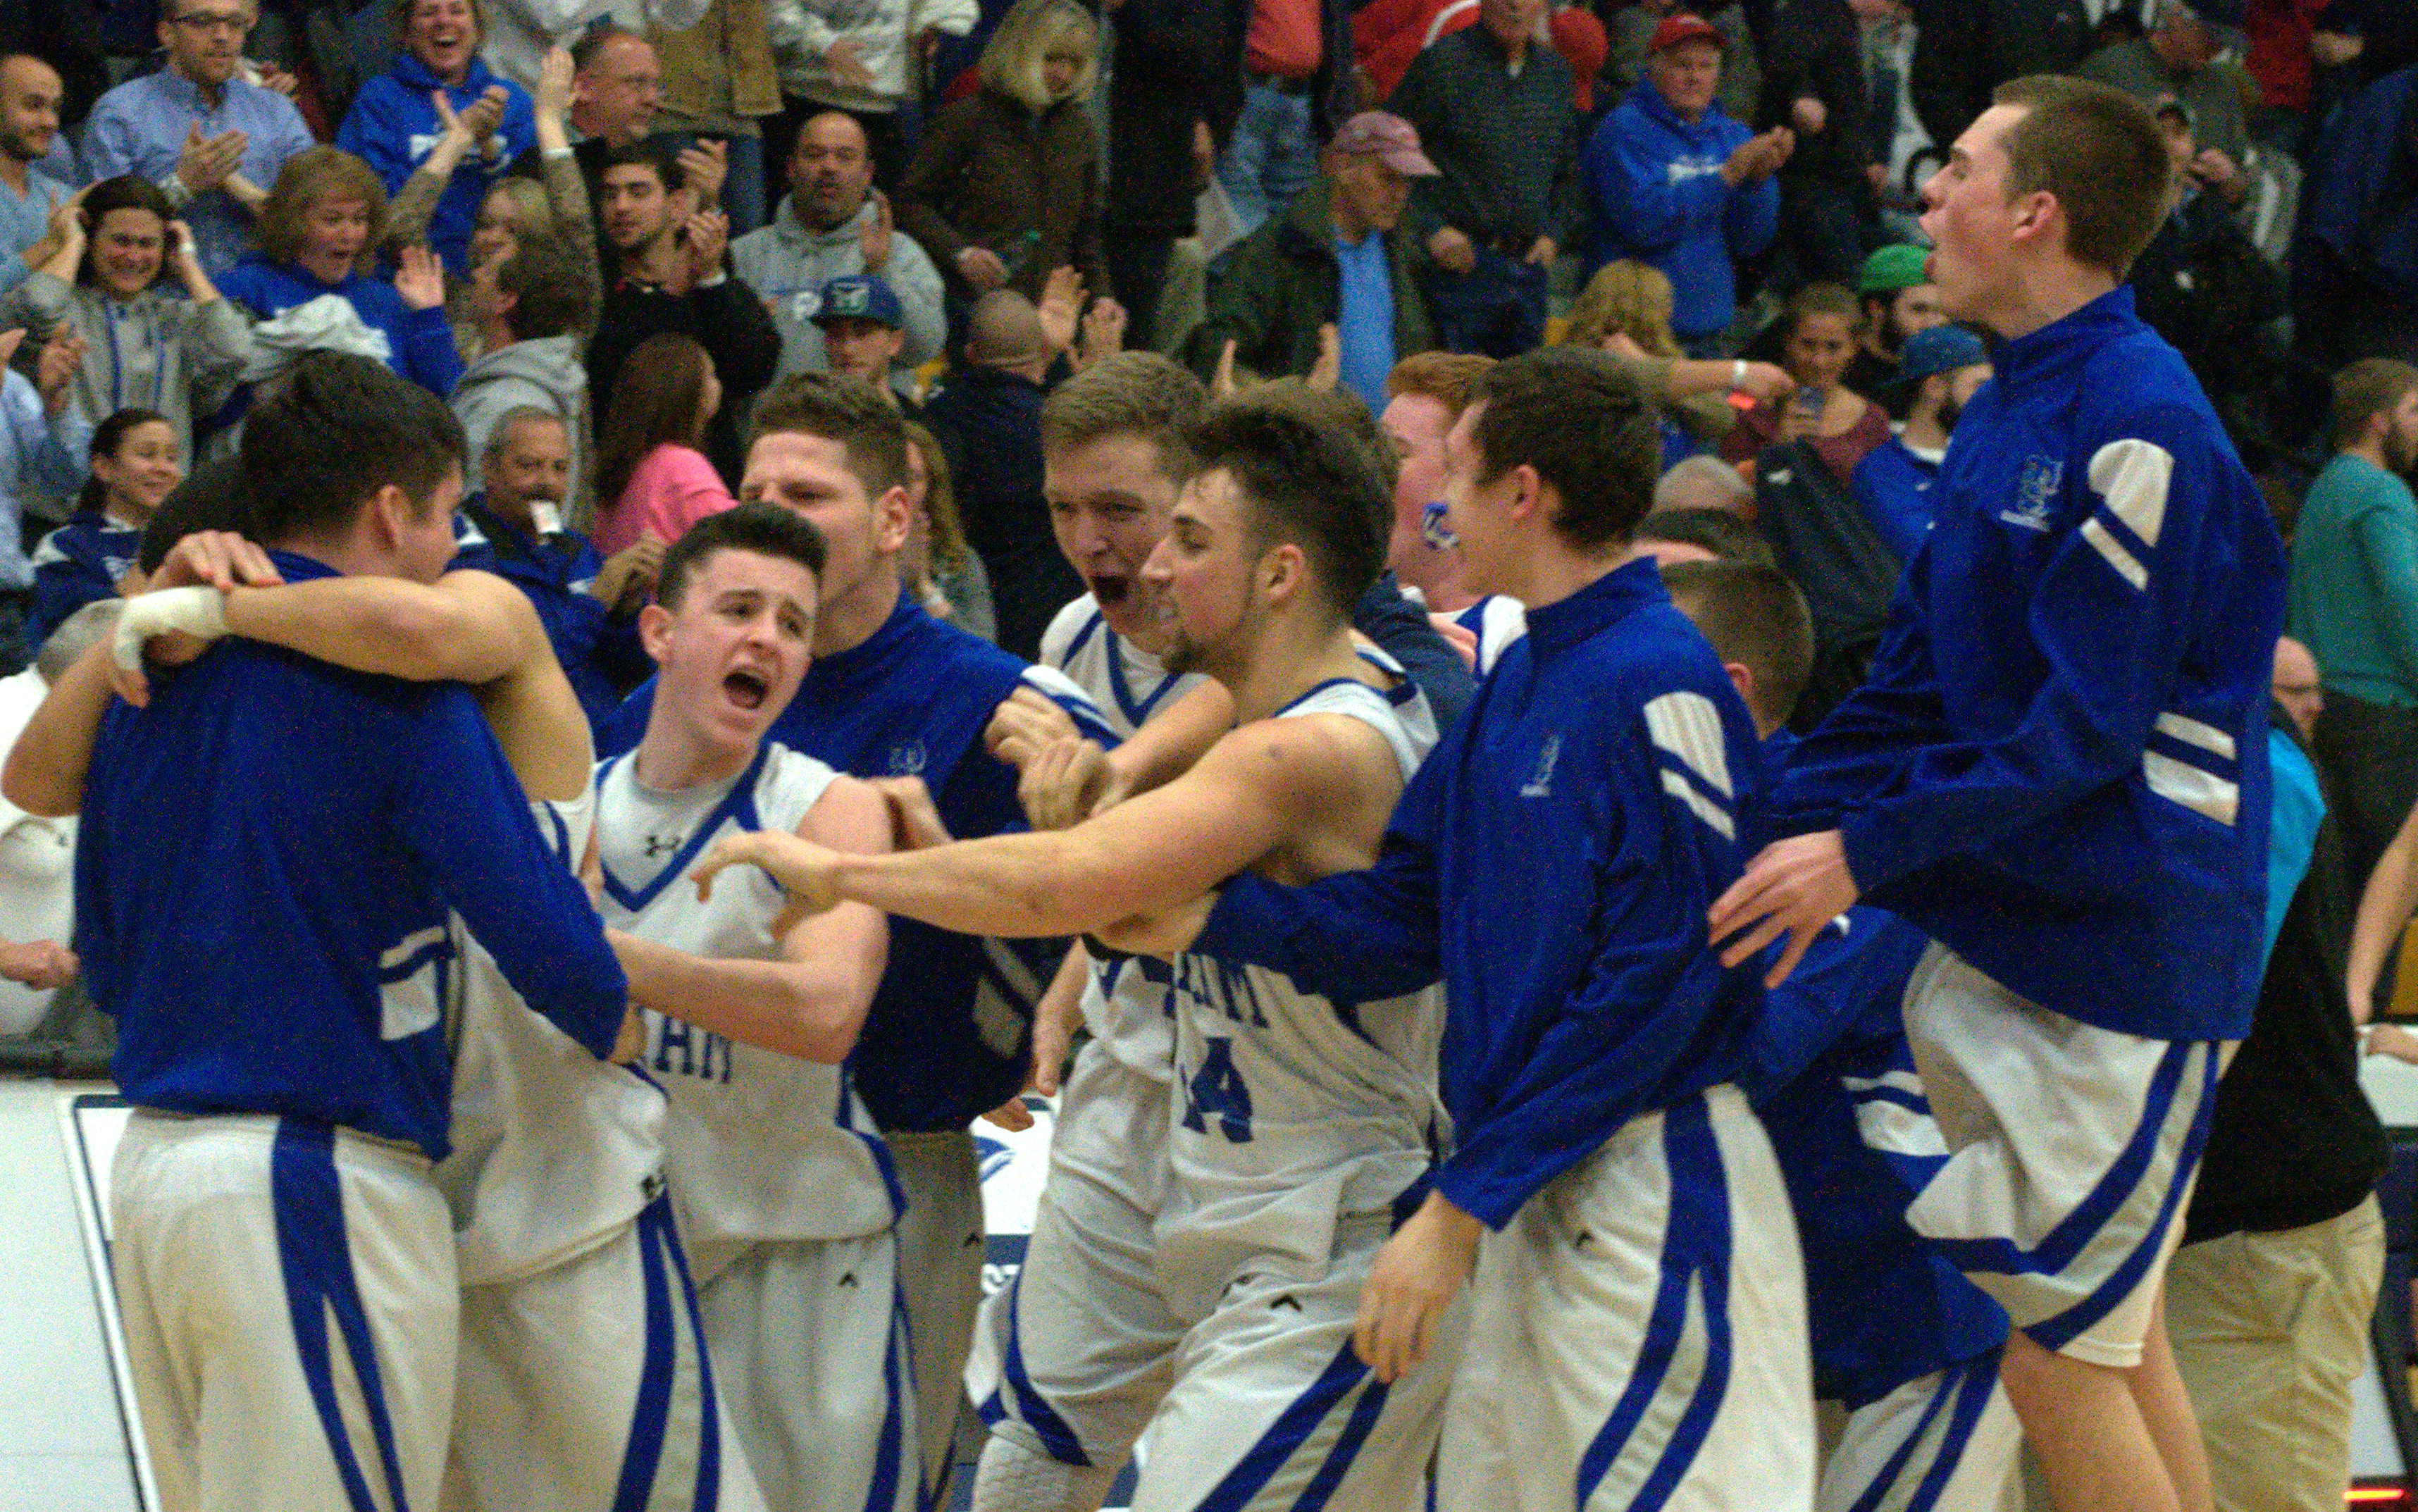 Pelham players celebrate their win Wednesday night over Campbell in the Division III semifinals.